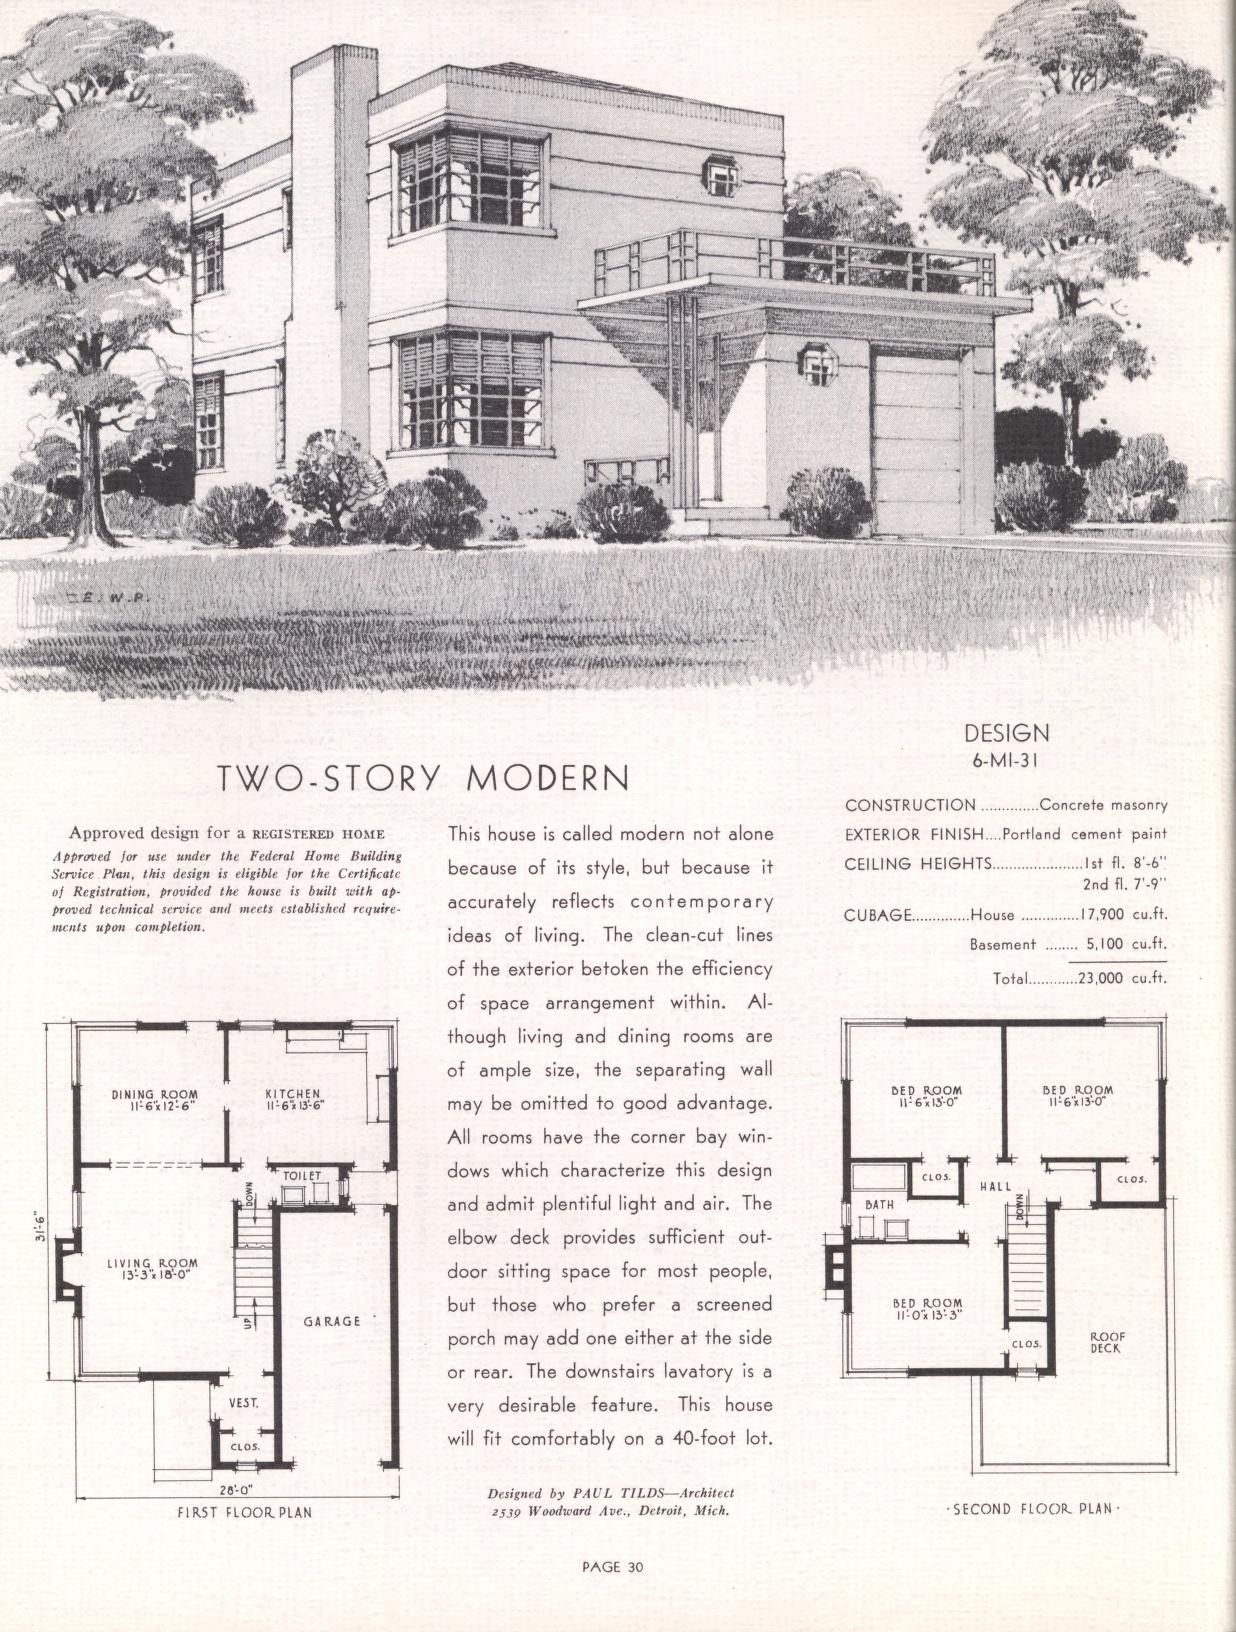 Pin By David Carr On Mid Century Modern Vintage House Plans Sims House Plans Home Design Floor Plans